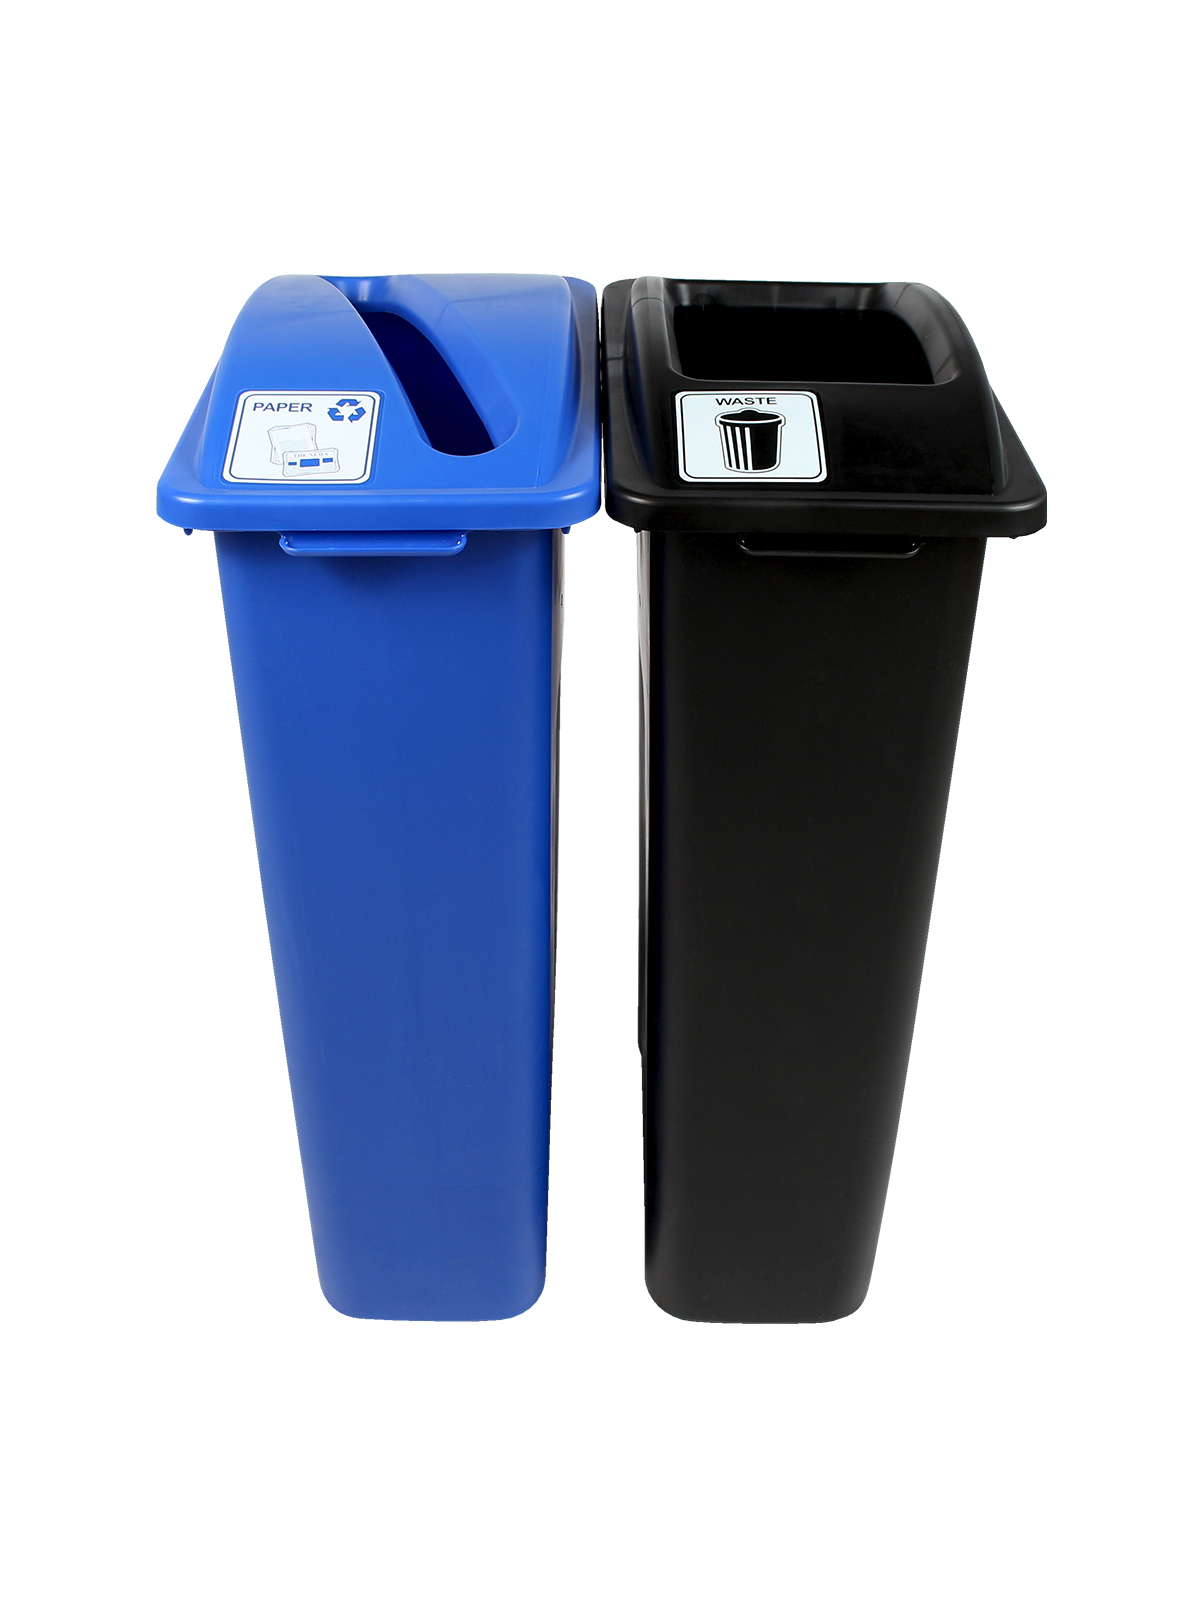 WASTE WATCHER - Double - Paper-Waste - Slot-Full - Blue-Black